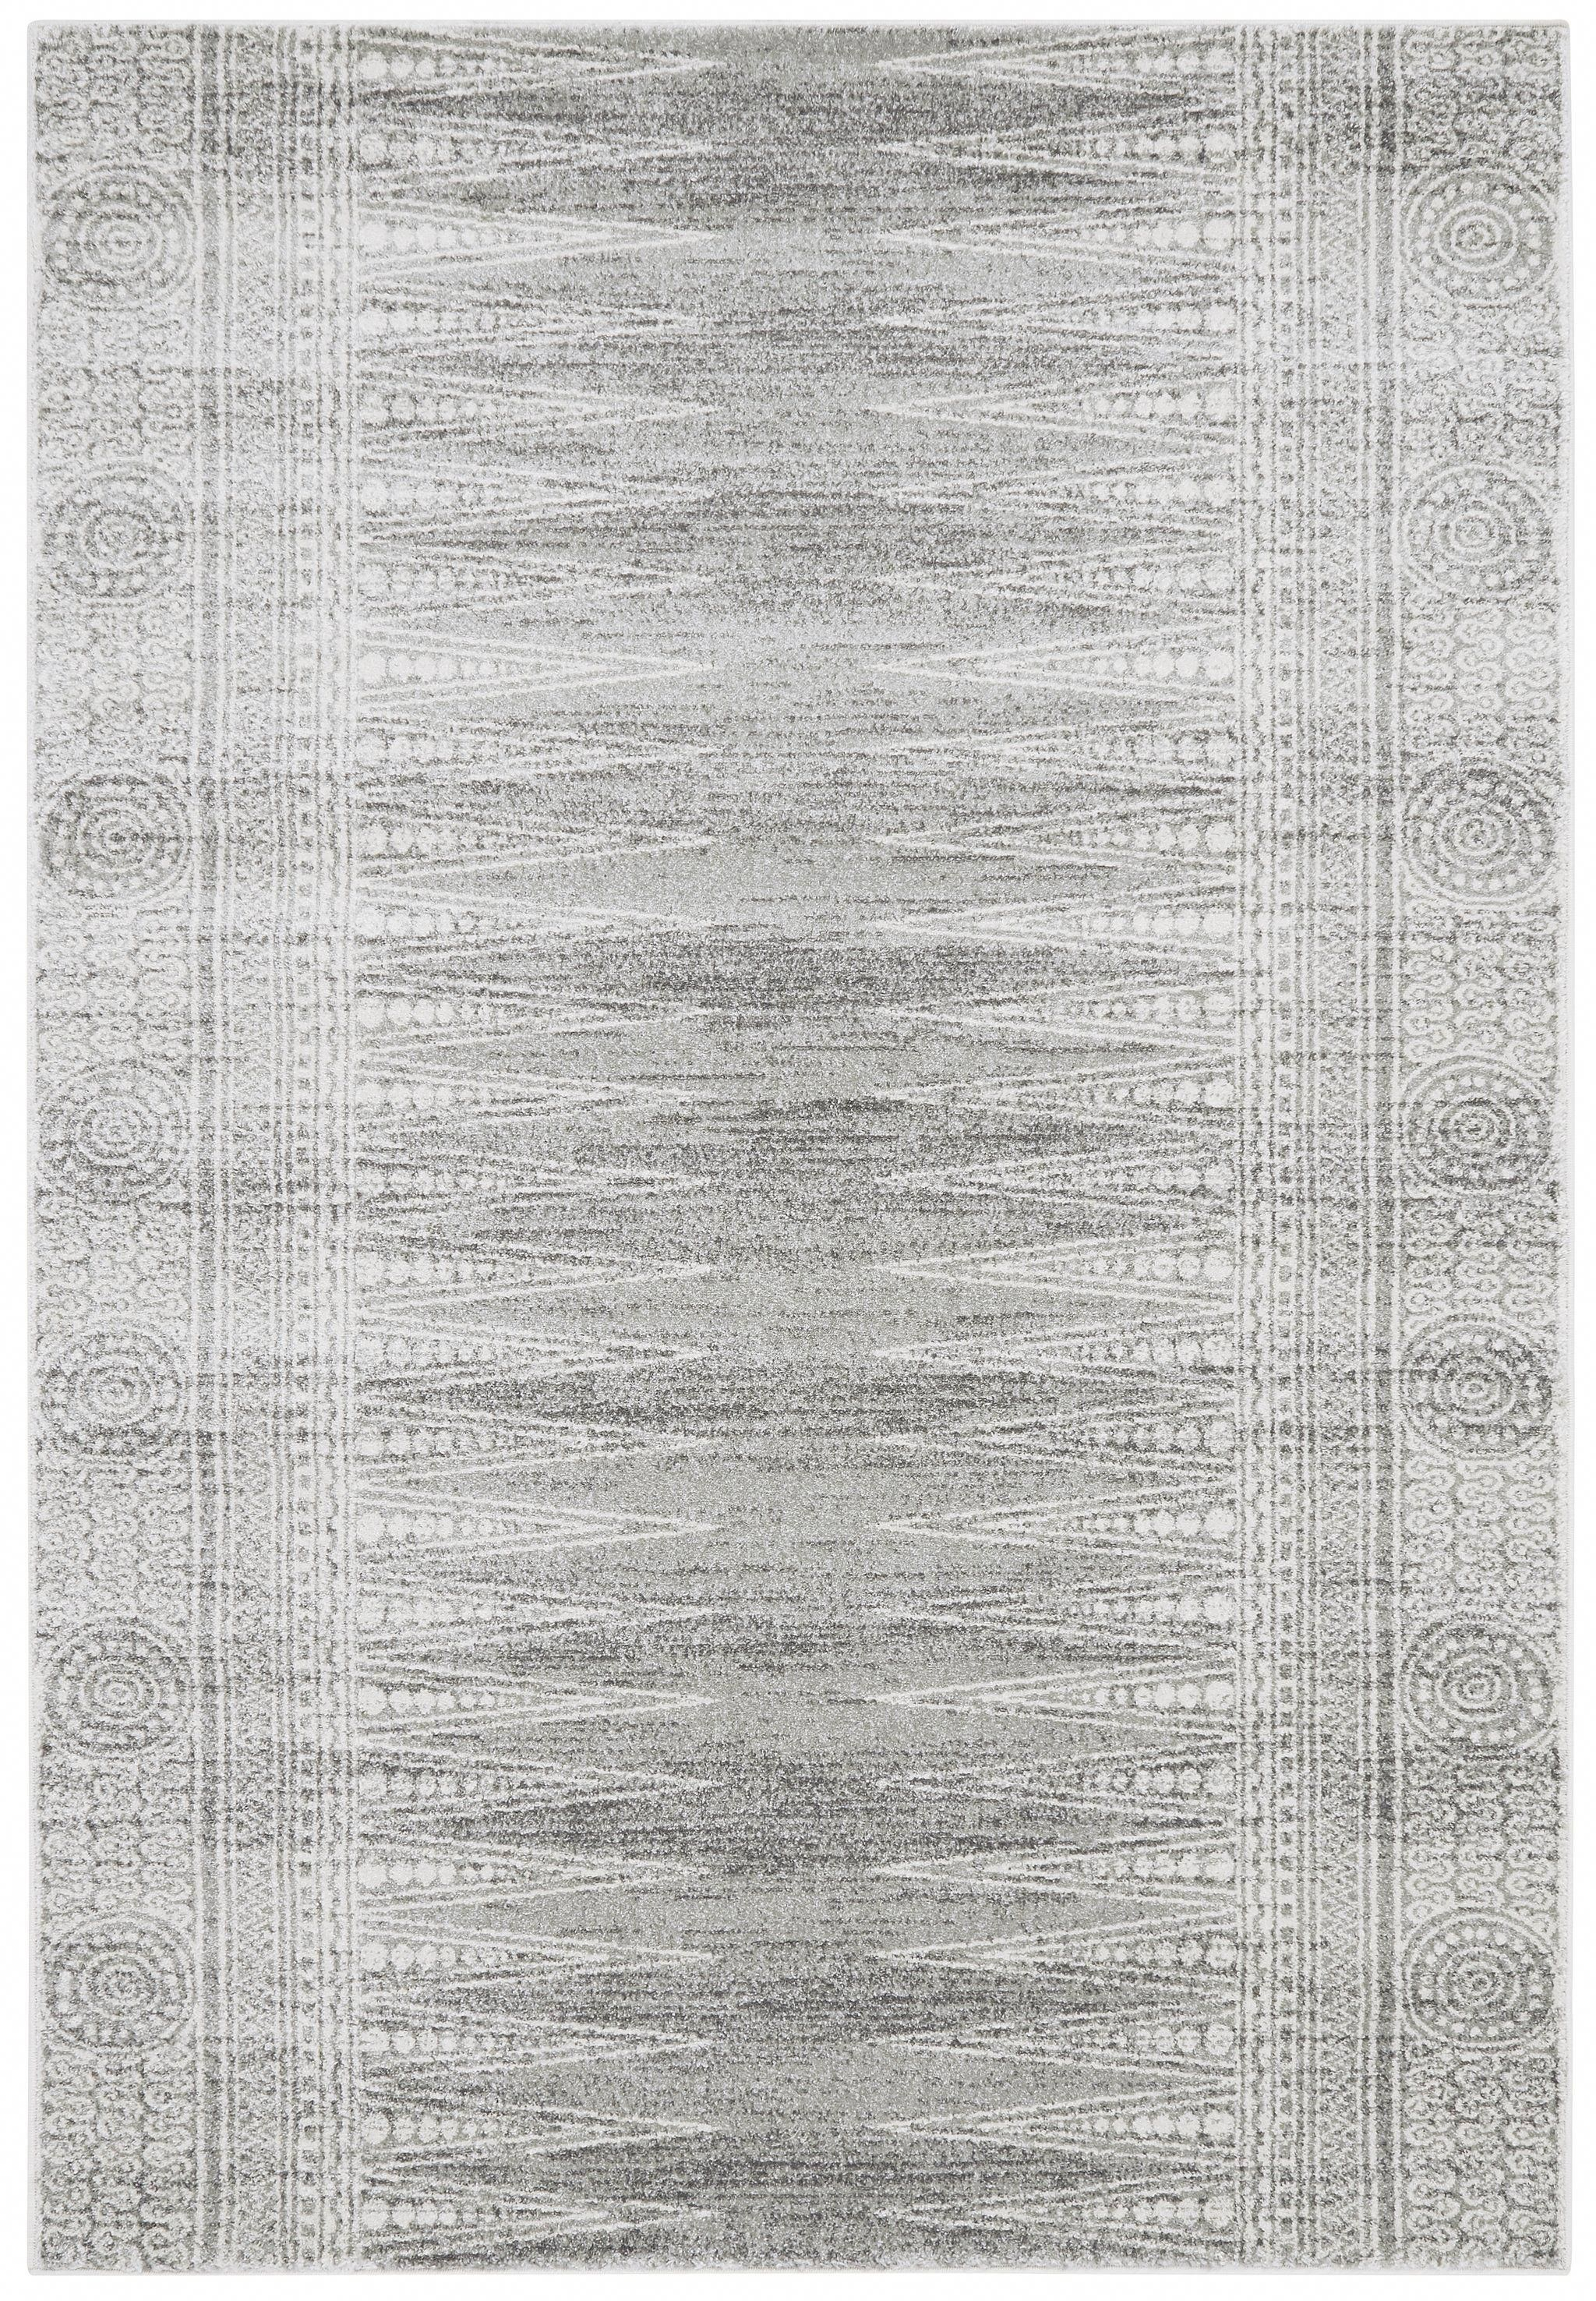 Buy Soft Touch Shaggy Rug Grey Mist At Argos Co Uk Your Online Shop For Rugs And Mats Rugs And Mats Shaggy Rug Grey Rugs